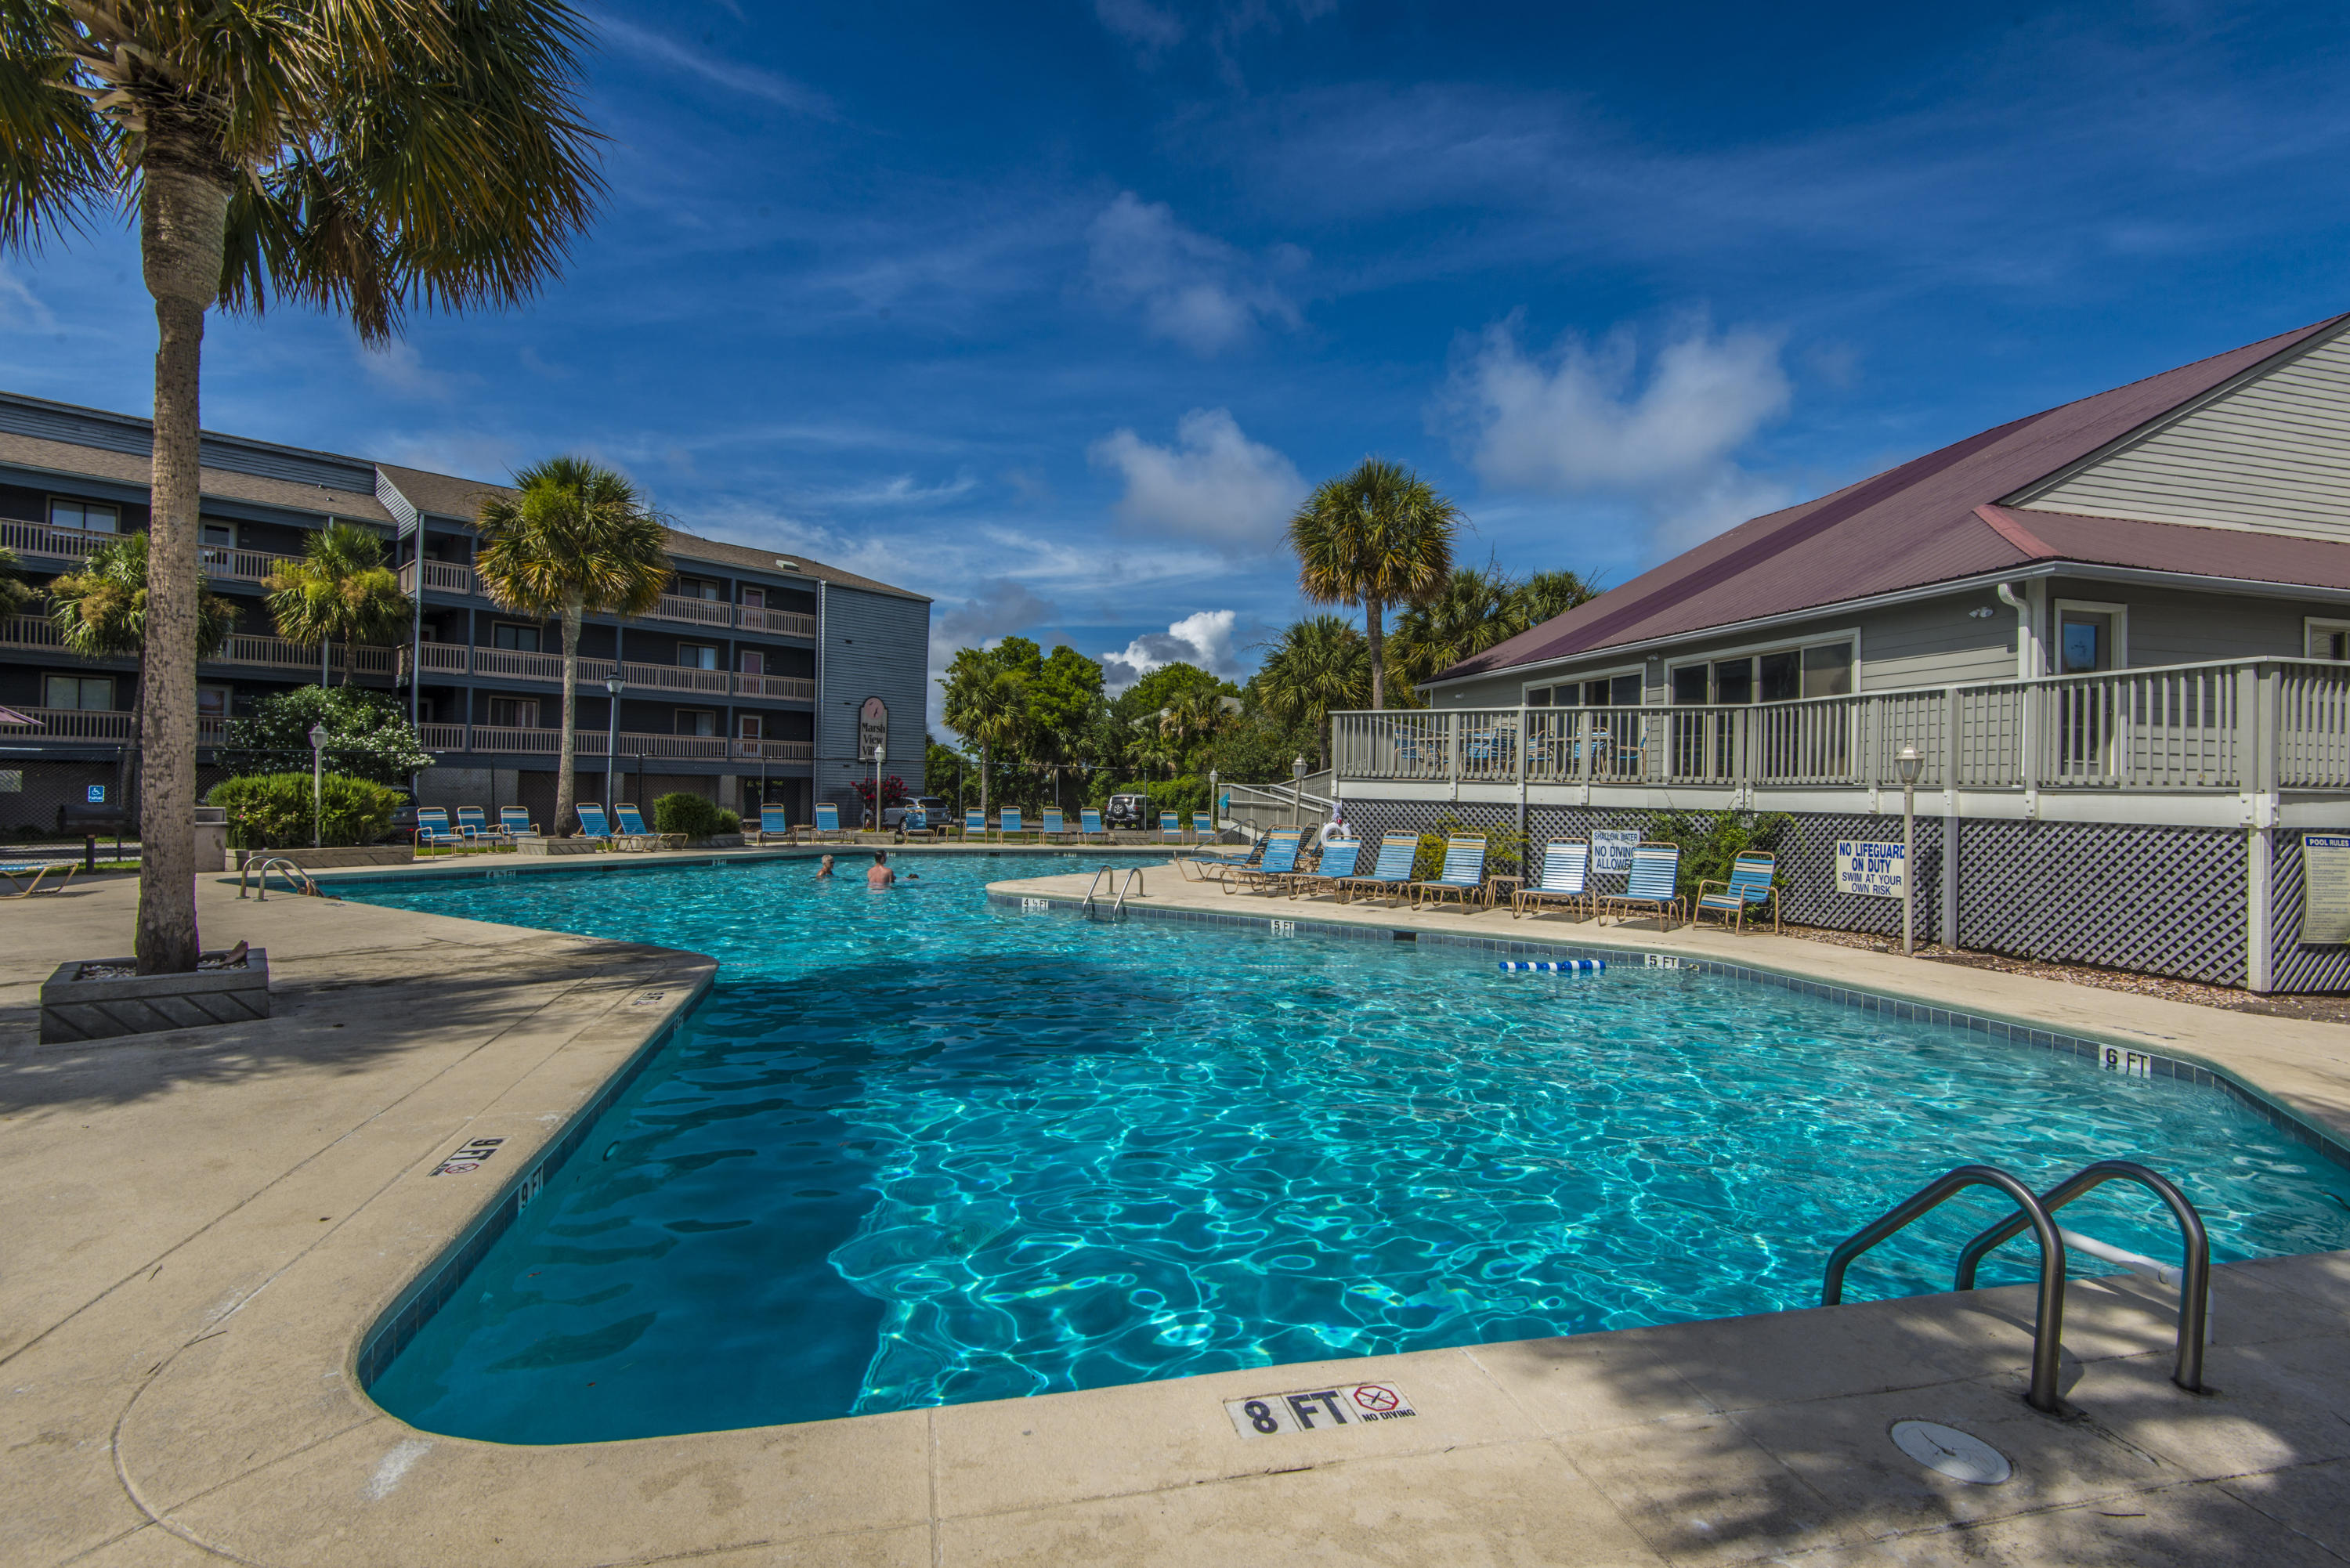 Mariners Cay Homes For Sale - 60 Mariners Cay, Folly Beach, SC - 34